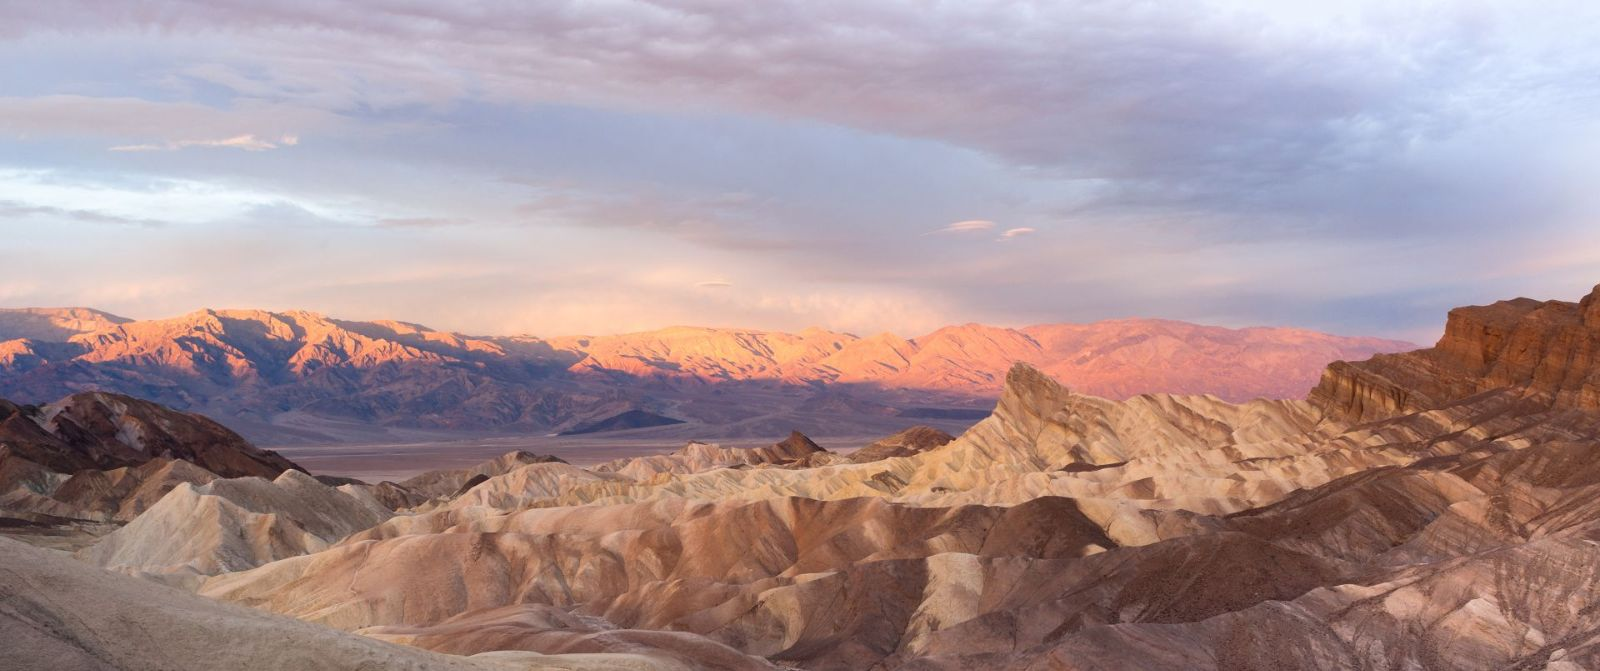 DRamatic sunrise at Death Valley